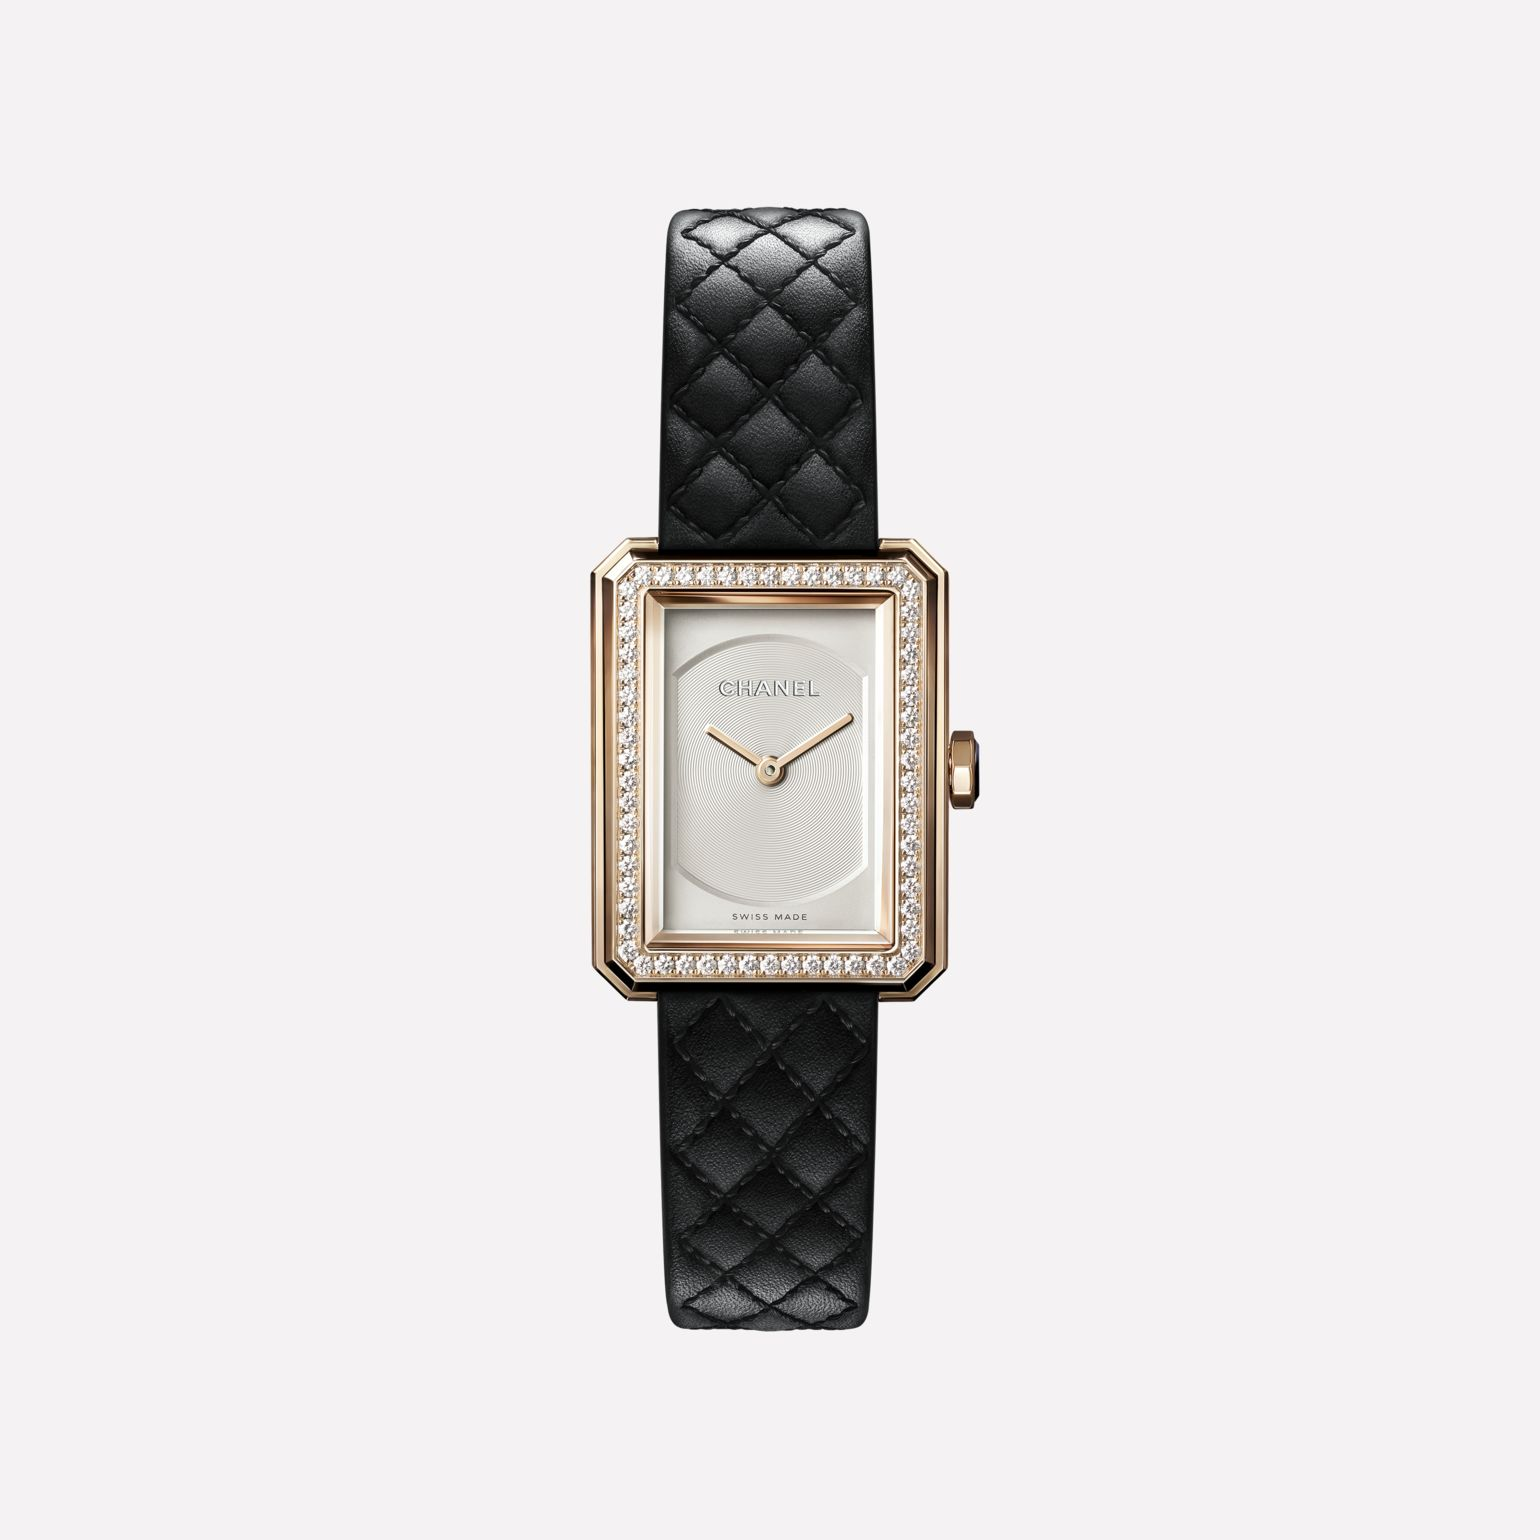 BOY·FRIEND watch Small version, BEIGE GOLD and diamonds, quilted pattern calfskin strap